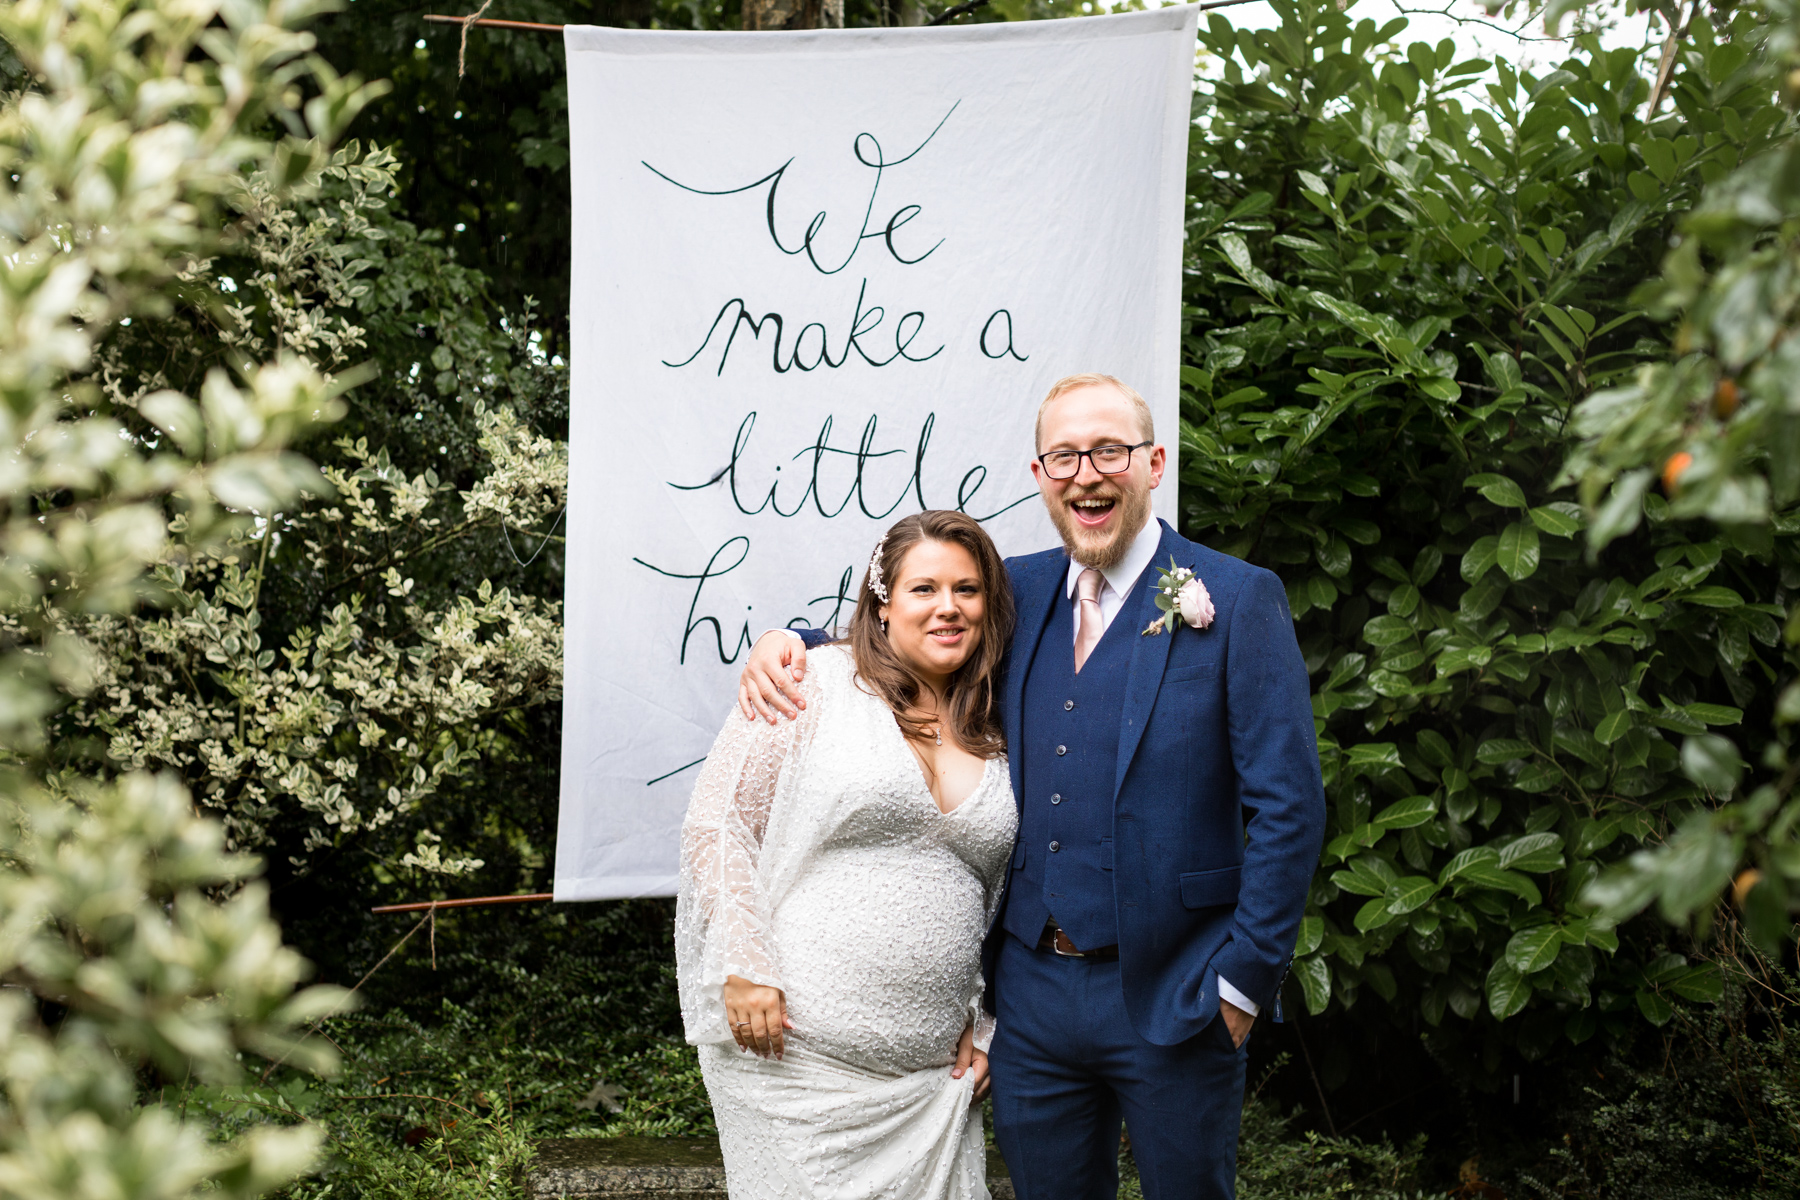 Bride and groom with banner